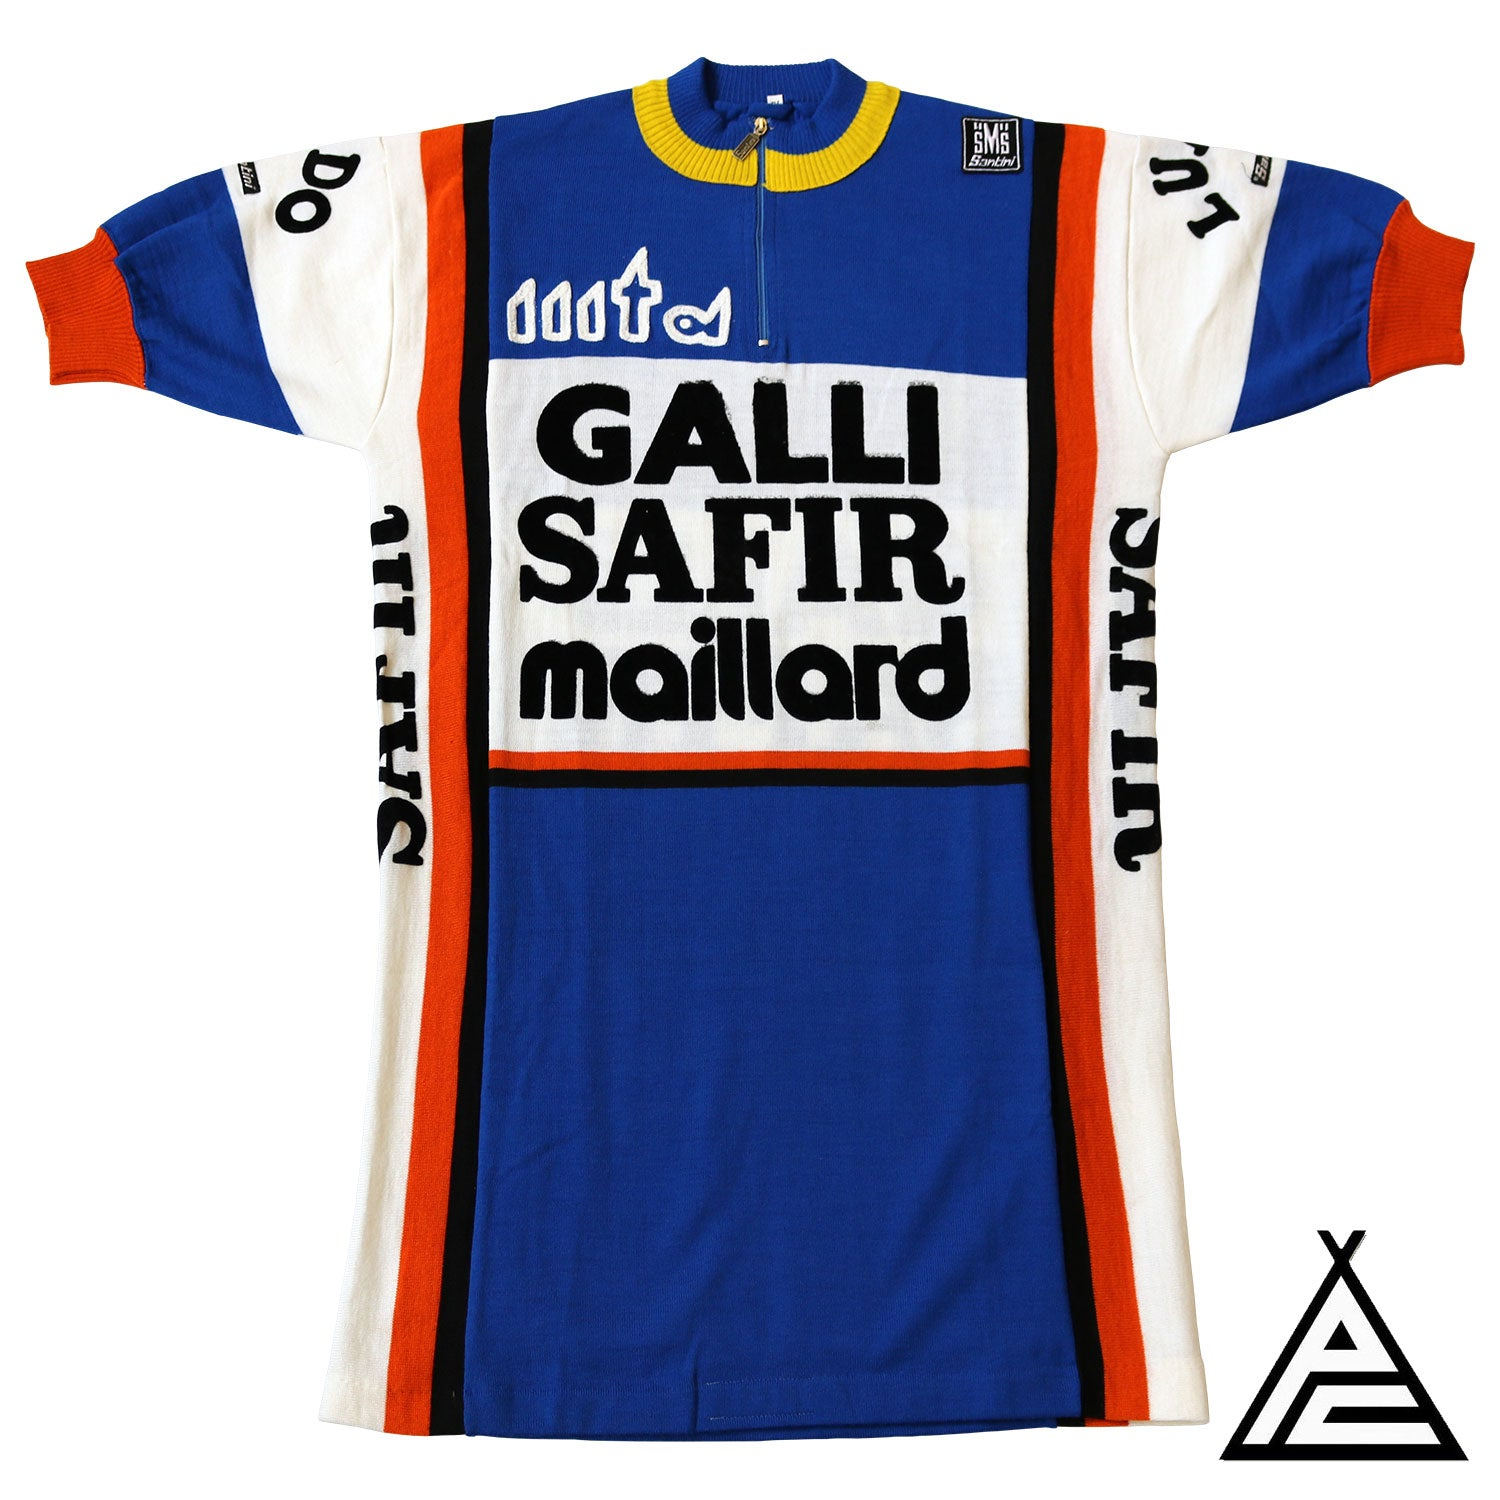 Safir Galli Maillard 1981 Wool Team Jersey